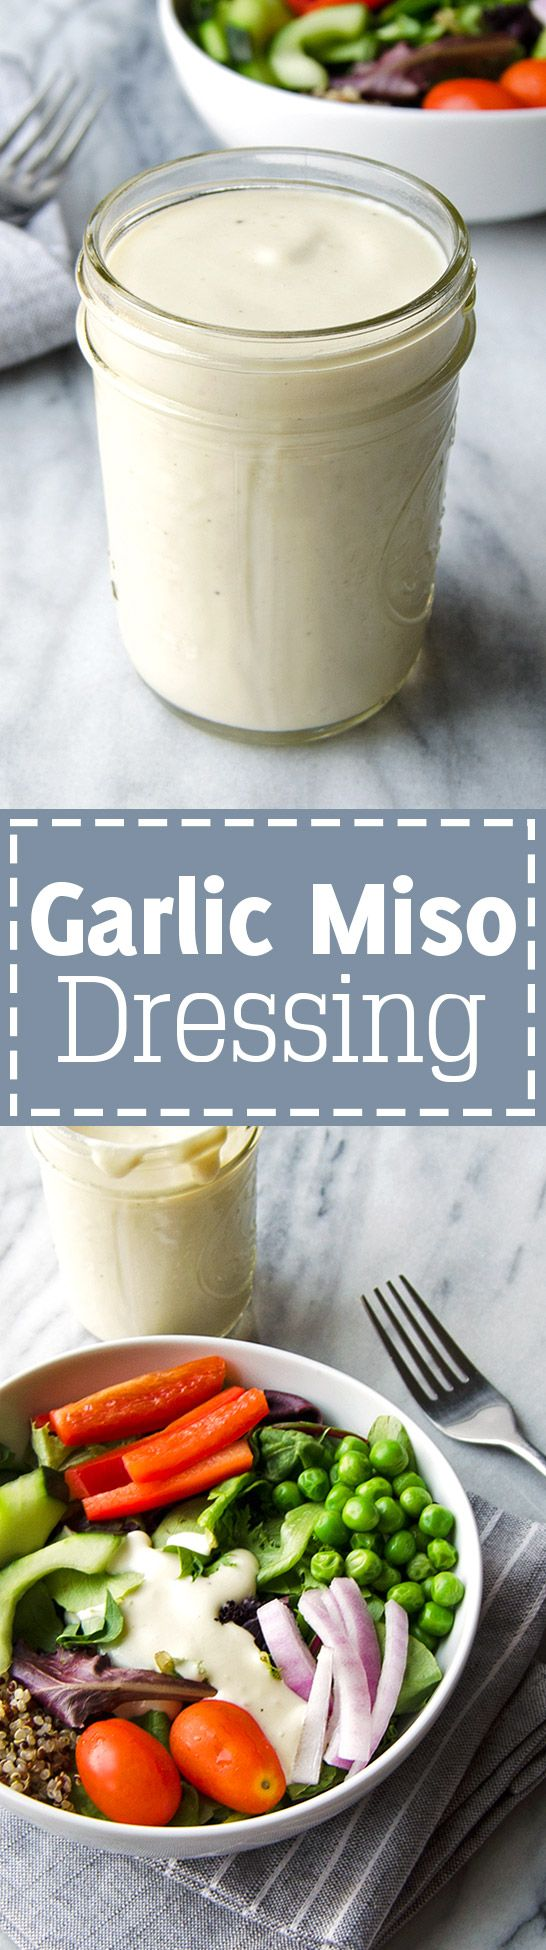 Garlic Miso Dressing - Super creamy and flavor packed! Use on salads and as a dip, or anything you would use ranch dressing with! | RECIPE at NomingthruLife.com